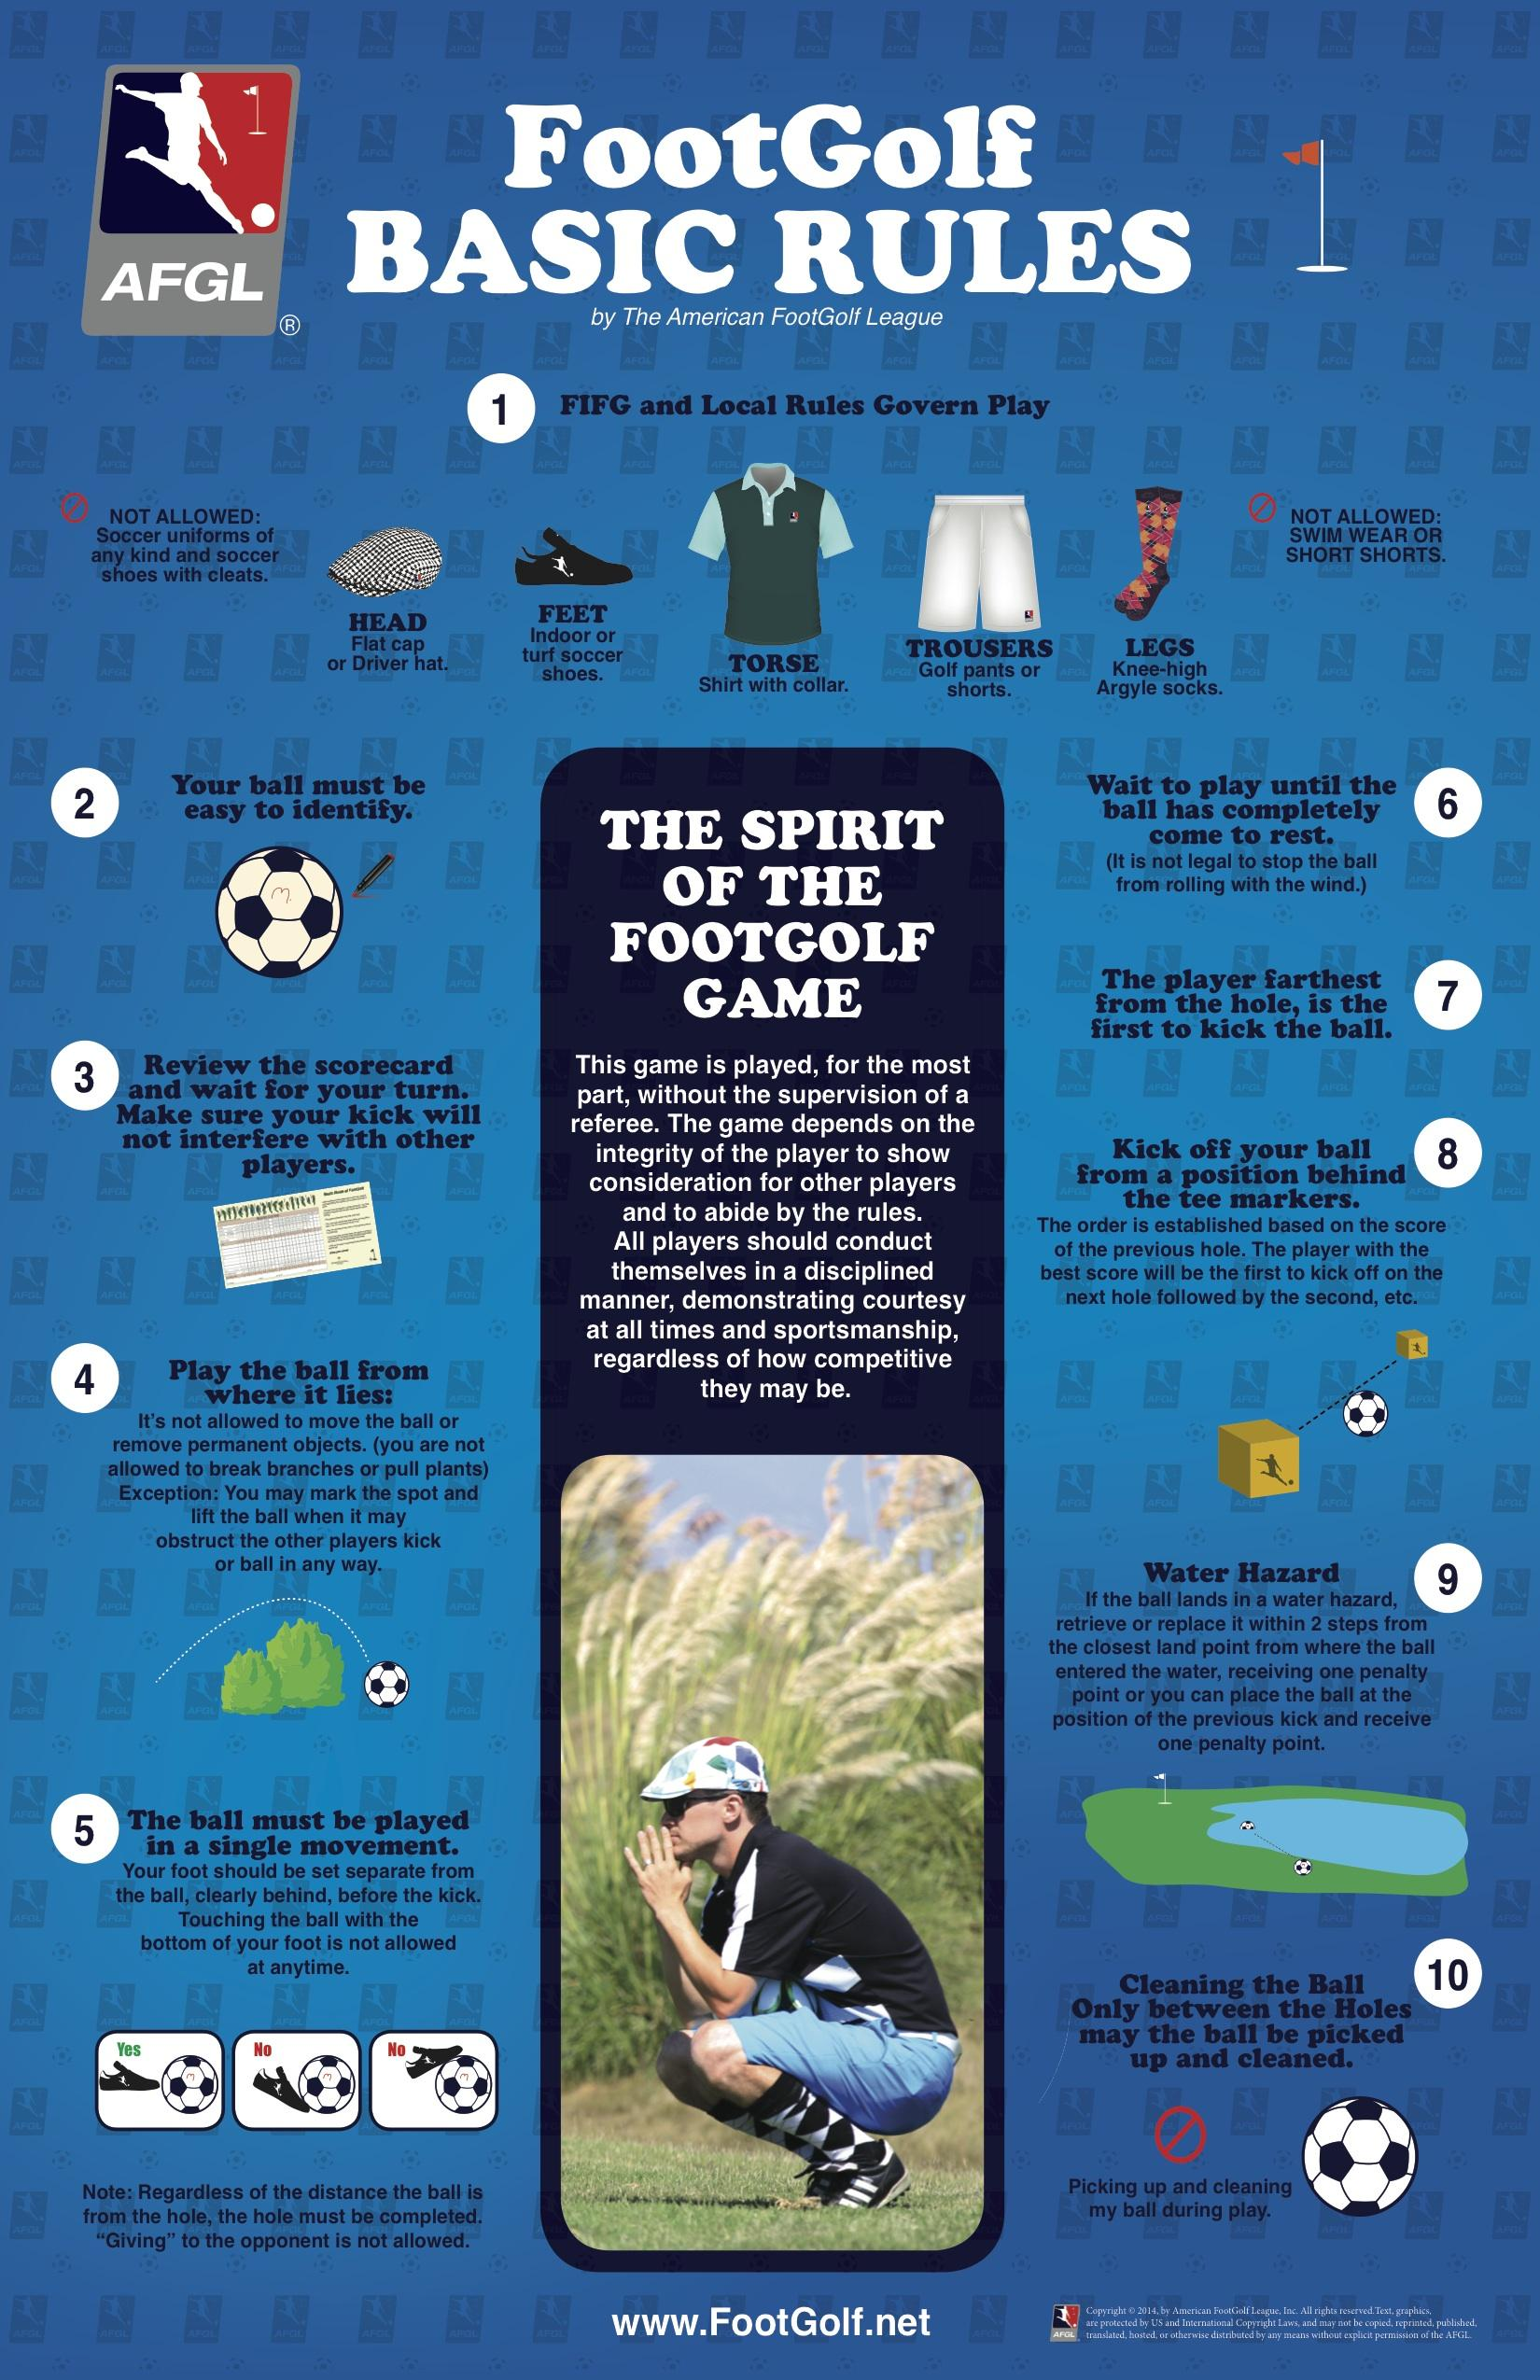 footgolfbasicrules